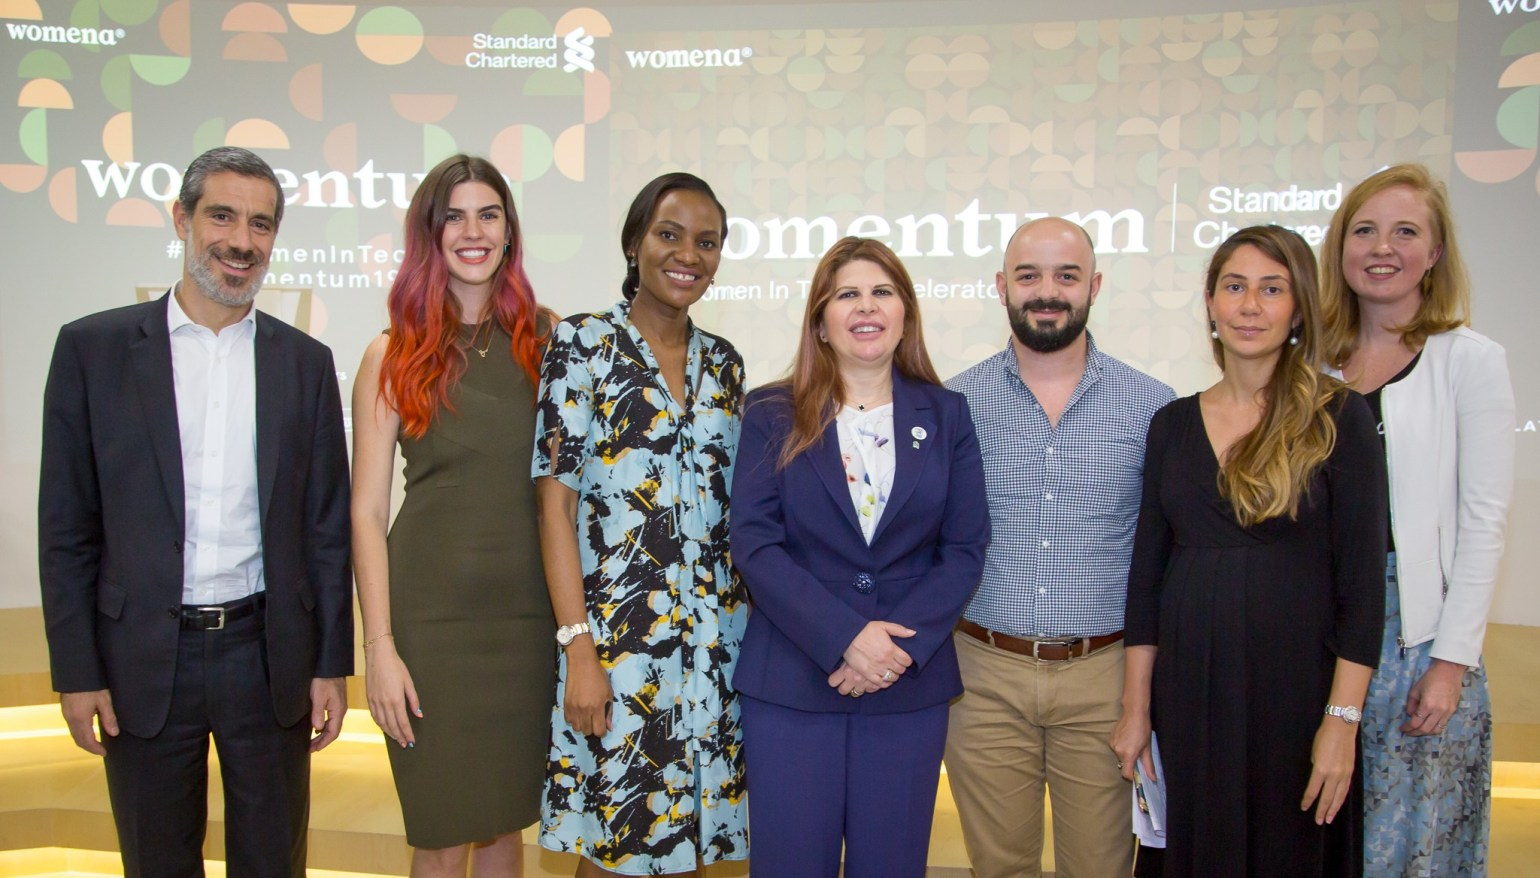 Womena announces finalists for its flagship Womentum Accelerator 2019